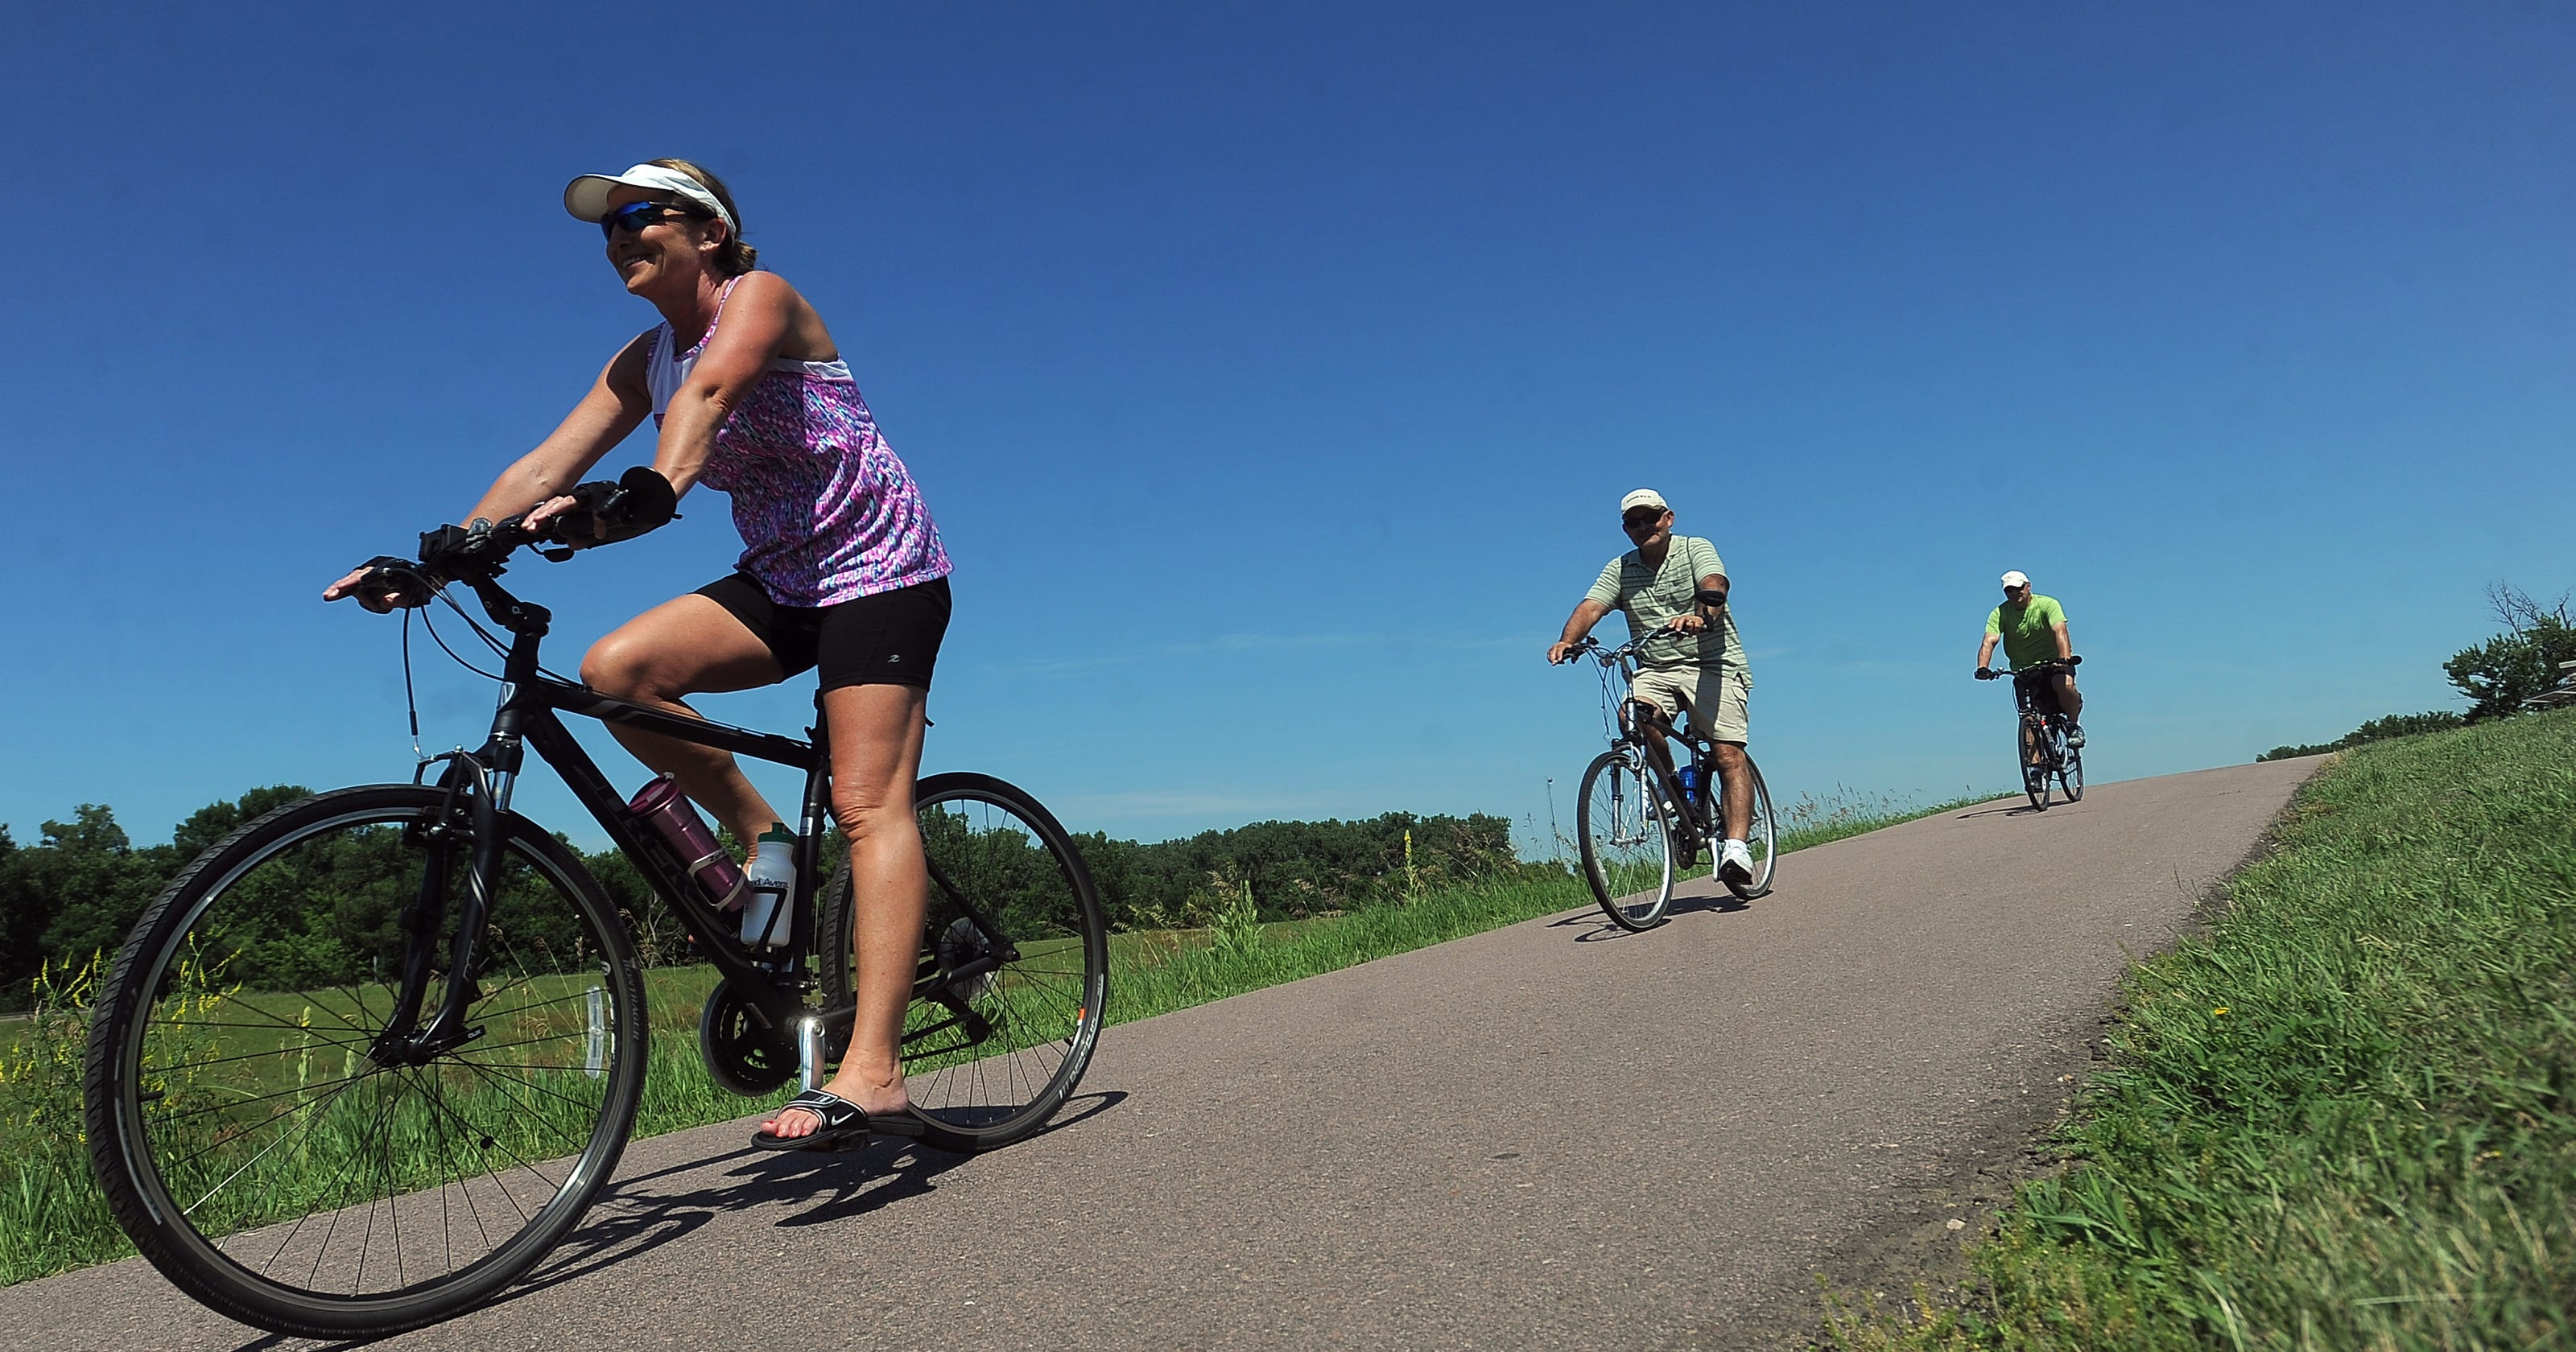 Parks Department to add mile of bike trail in western Sioux ... on bakersfield bike trail map, albuquerque bike trail map, ogden bike trail map, eagan bike trail map, albany bike trail map, brown county bike trail map, tampa bike trail map, brookings bike trail map, cincinnati bike trail map, black hills bike trail map, plano bike trail map, little rock bike trail map, farmington bike trail map, salem bike trail map, atlanta bike trail map, casper bike trail map, arvada bike trail map, bozeman bike trail map, wausau bike trail map, marquette bike trail map,